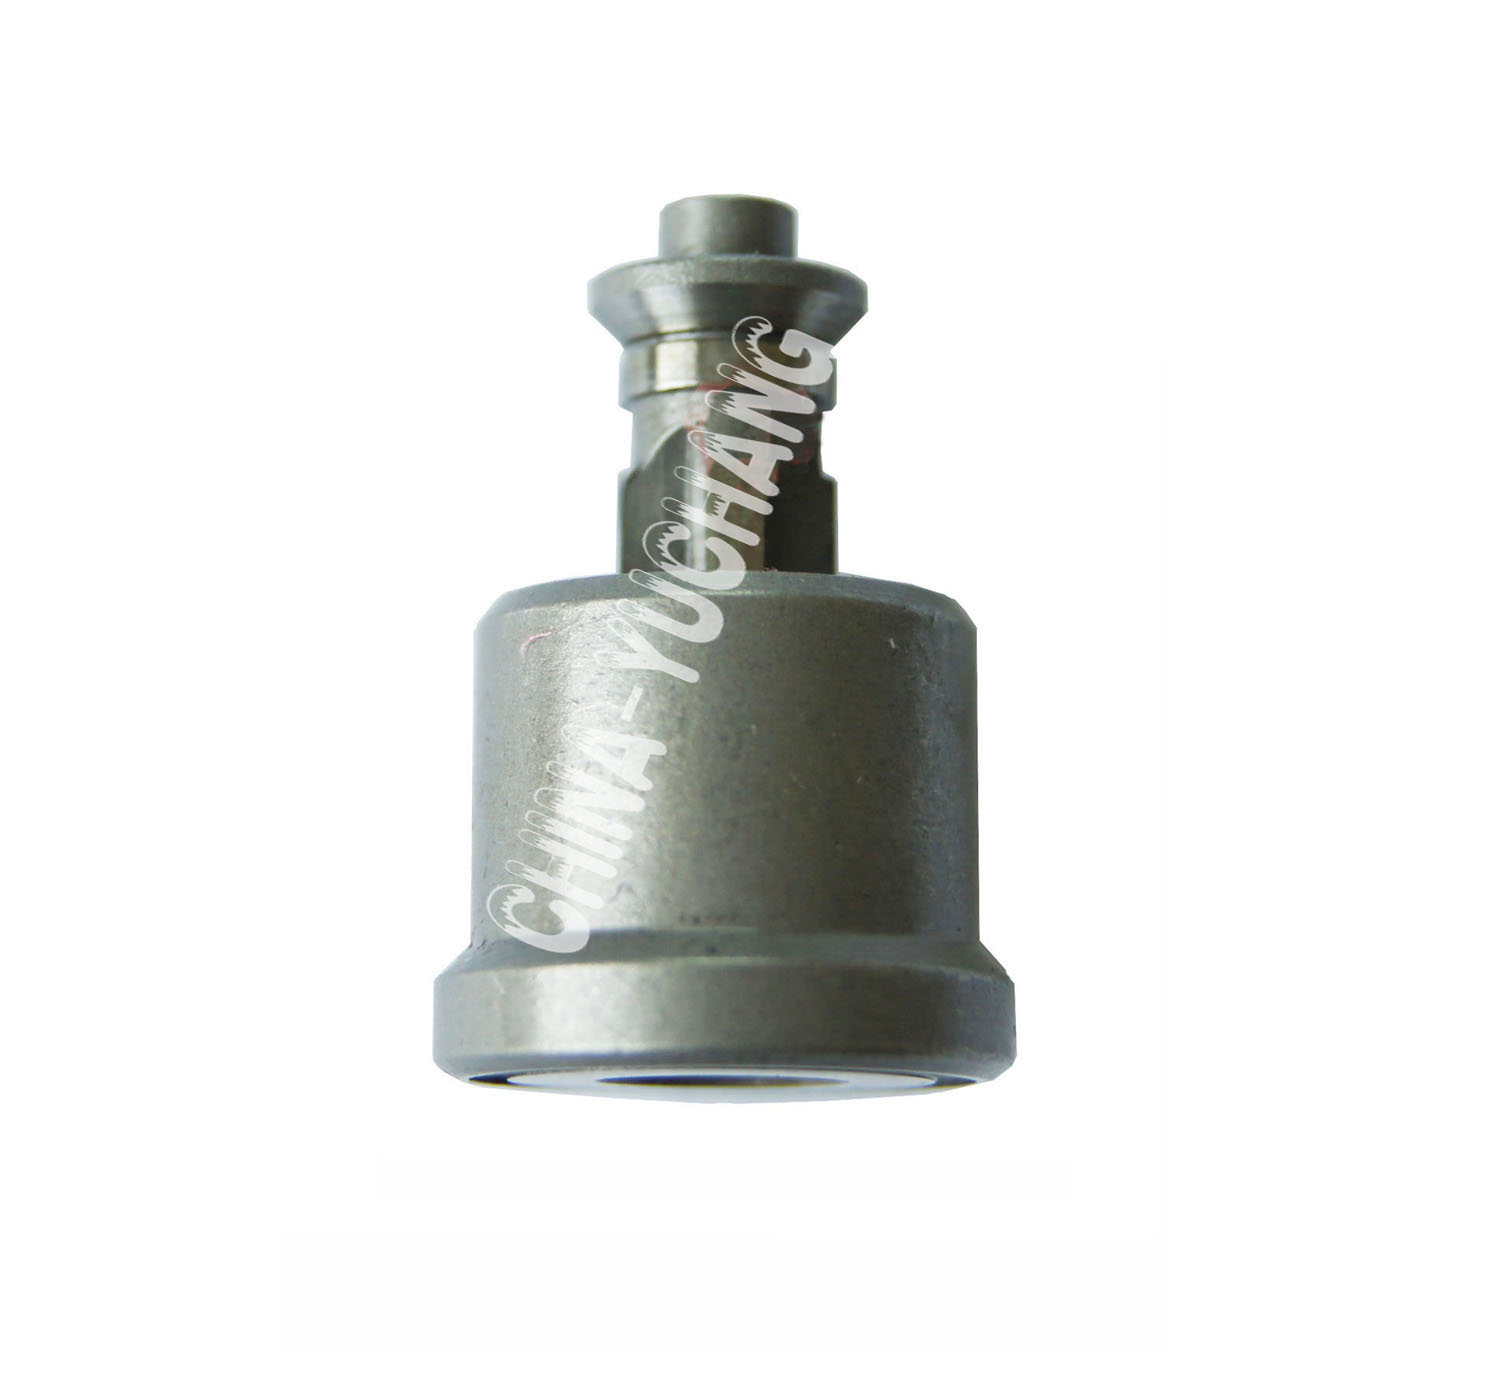 Delivery valves P4 134110-0520